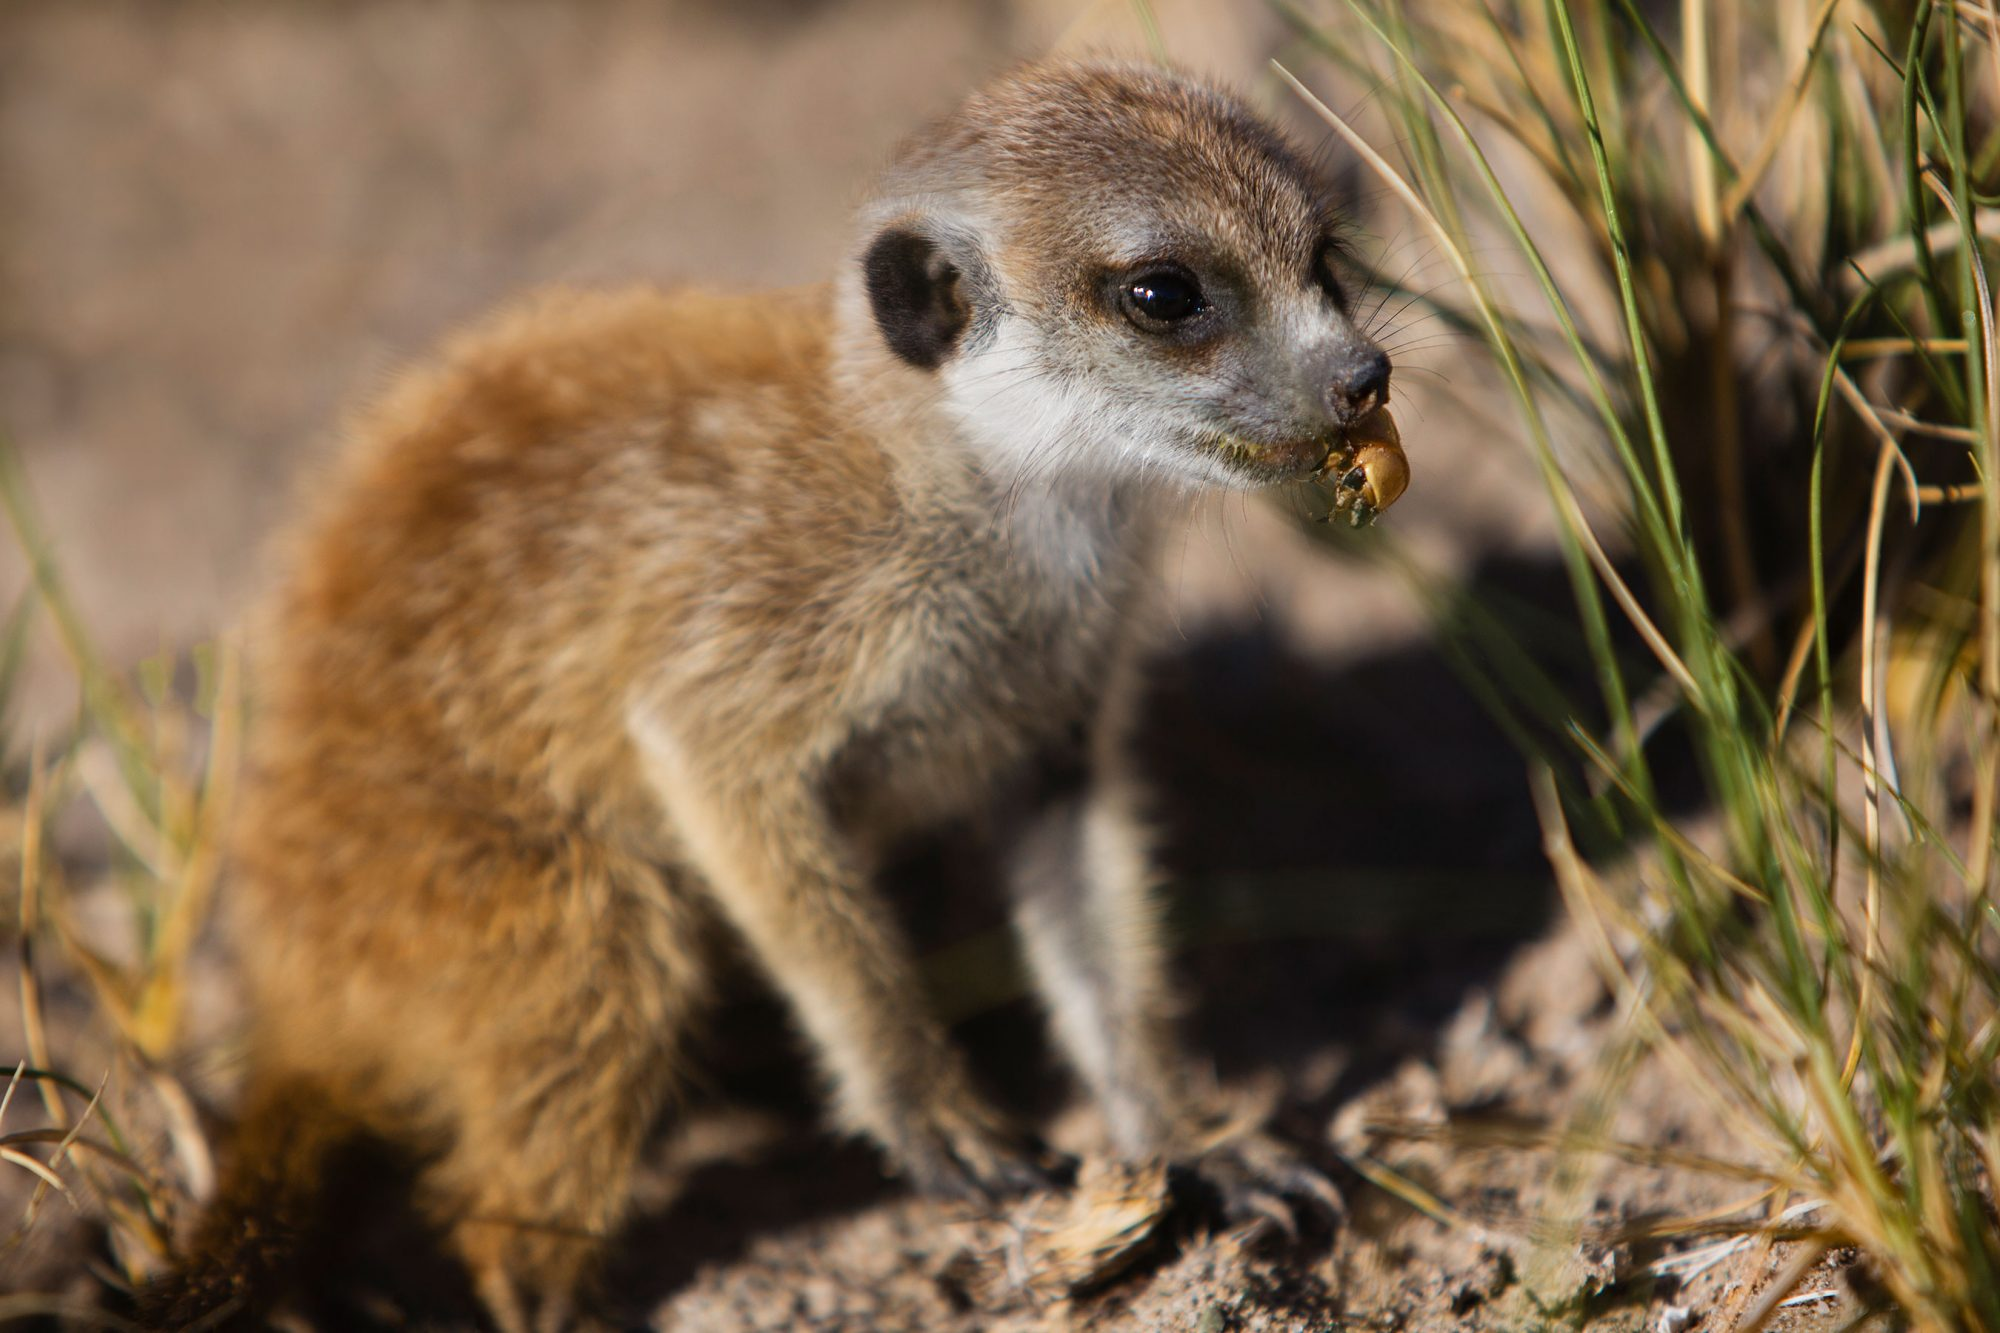 A young meerkat pup finds a grub during the clans morning foraging time